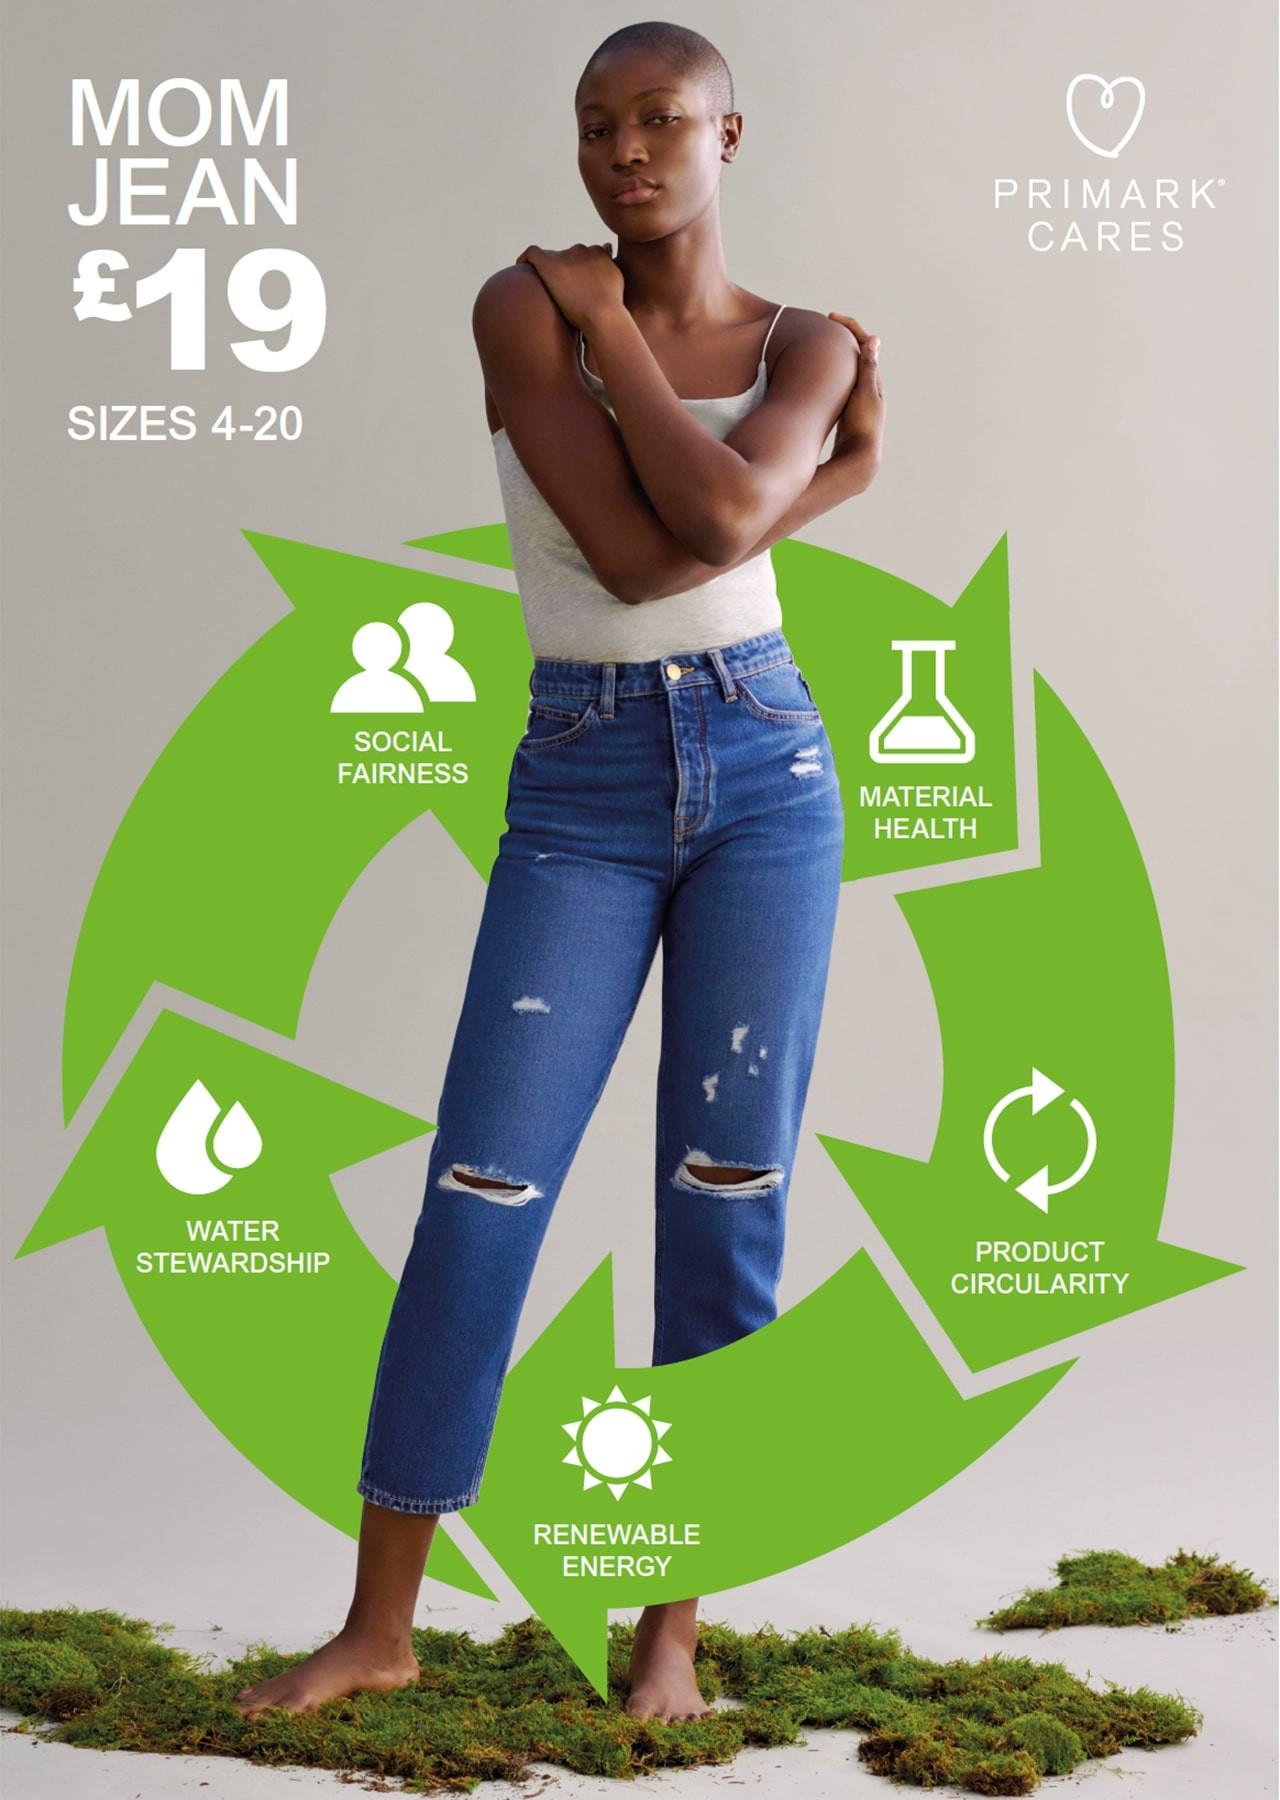 Primark's new 100% organic cotton mom jeans have achieved Cradle to Cradle Certified® at the Gold level